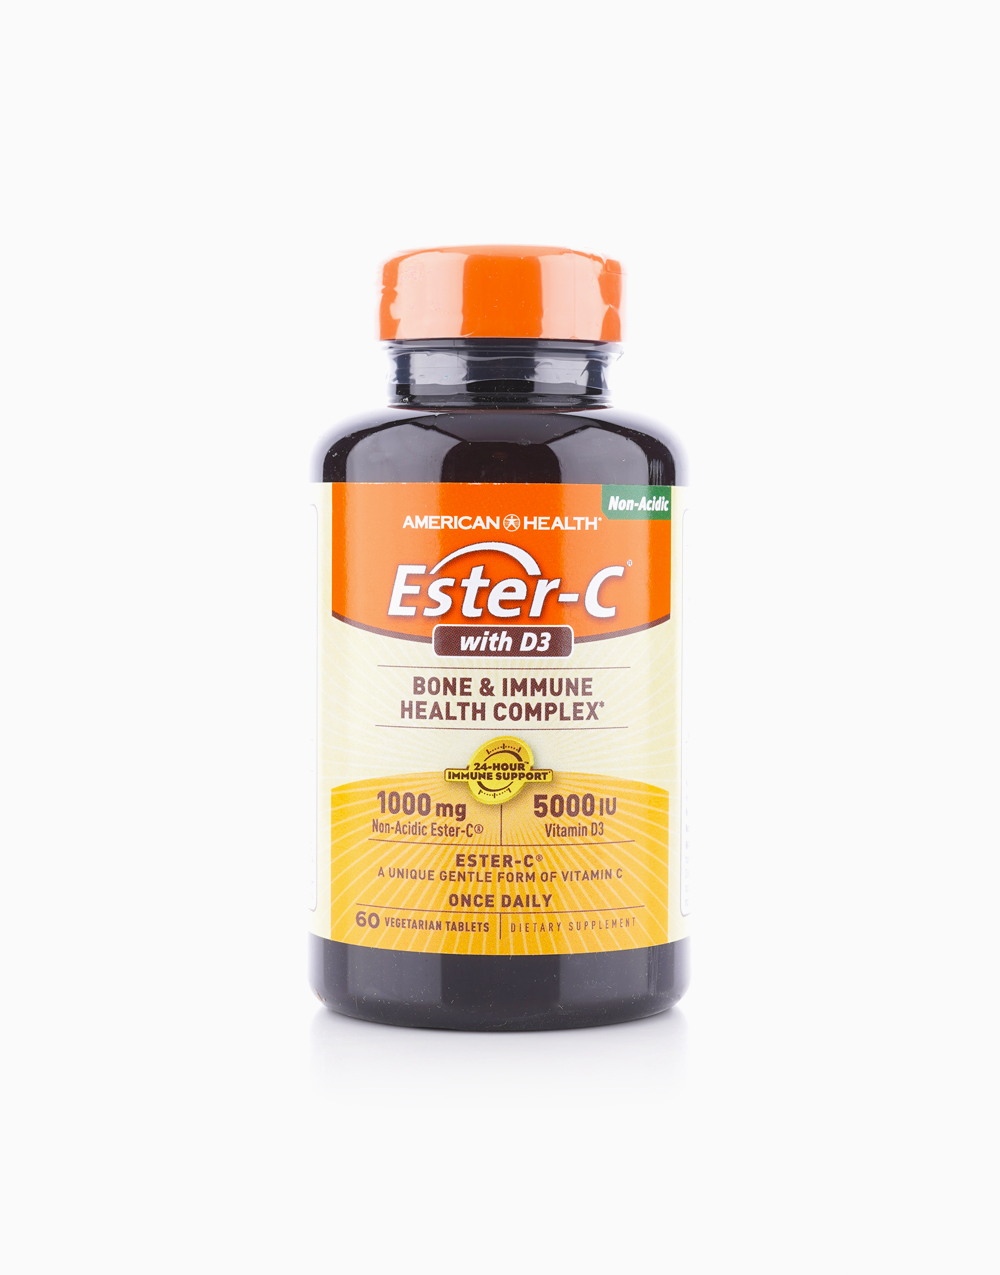 Ester-C with D3 - Bone and Immune Health Complex (1,000mg / 5,000IU, 60 Vegetarian Tablets) by American Health